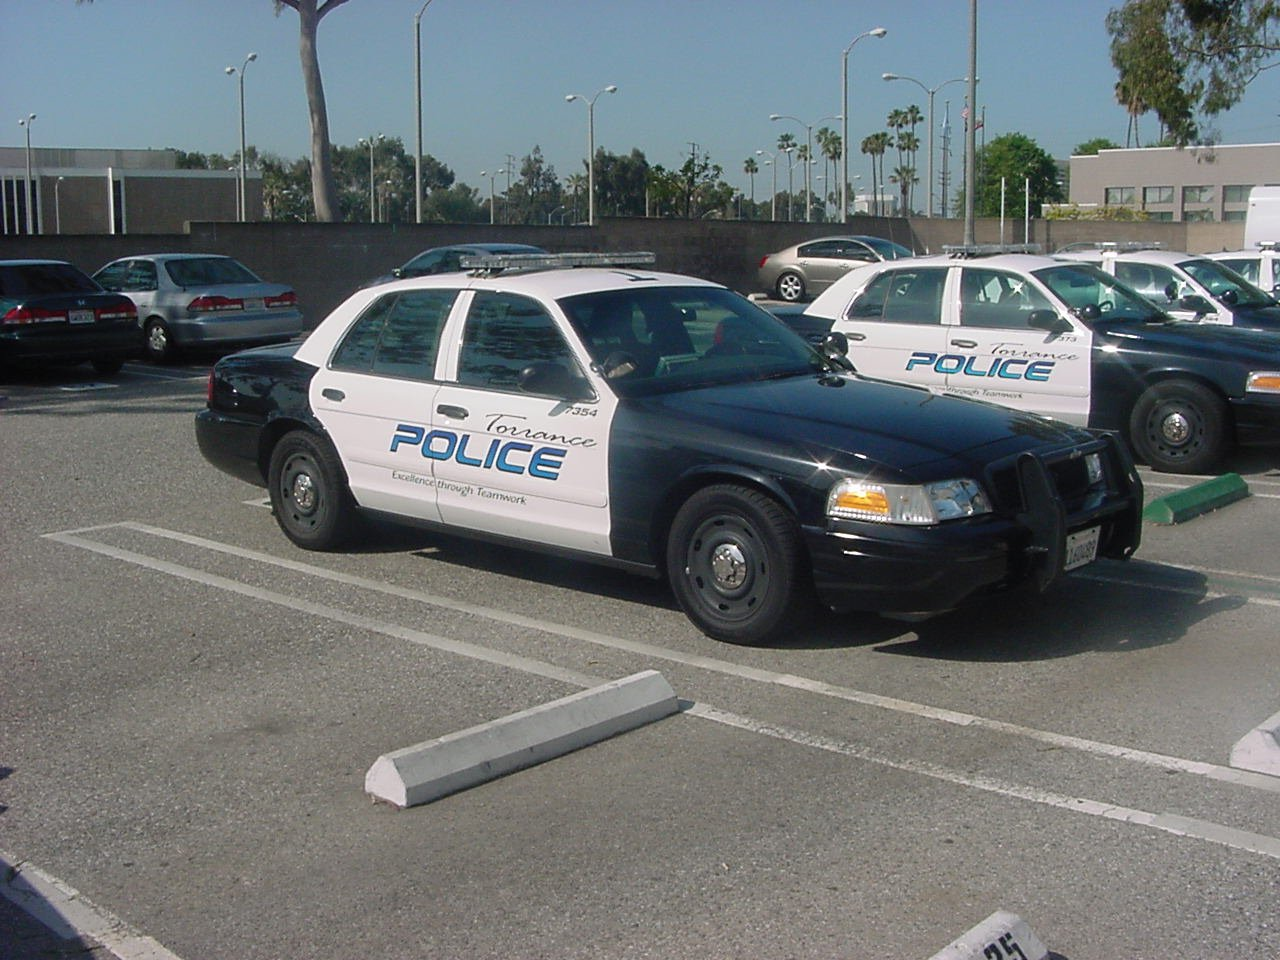 Torrance police vehicles appear in a photo posted on the agency's Facebook page in June 2014.